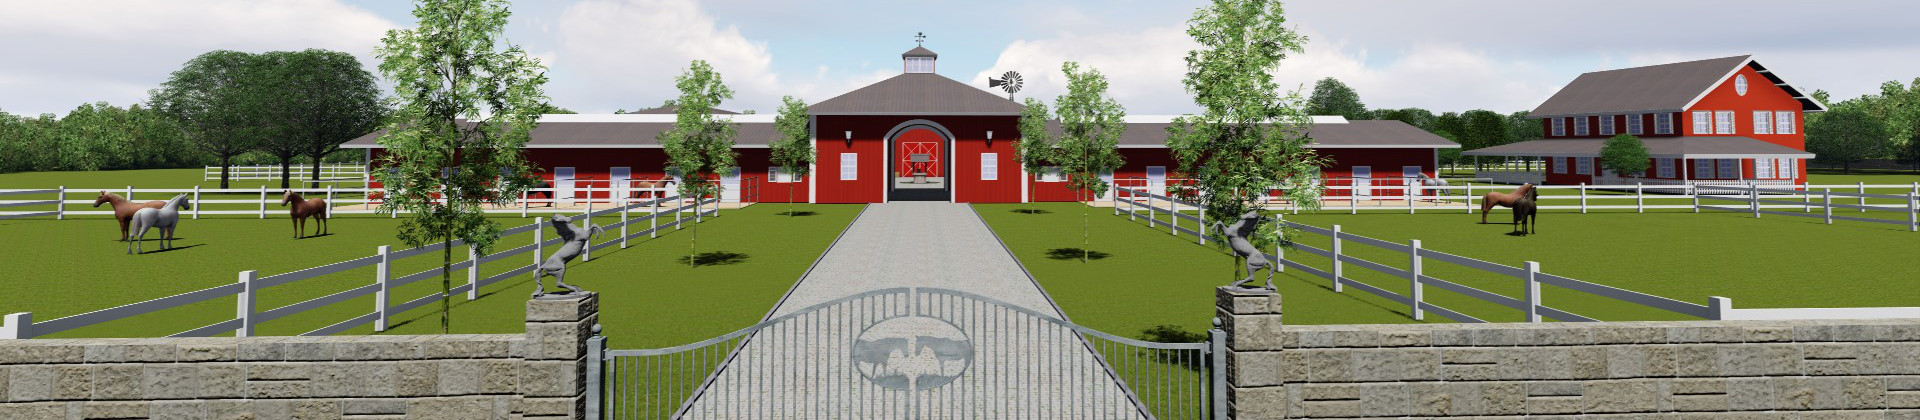 Equestrian centres and stud premises planning